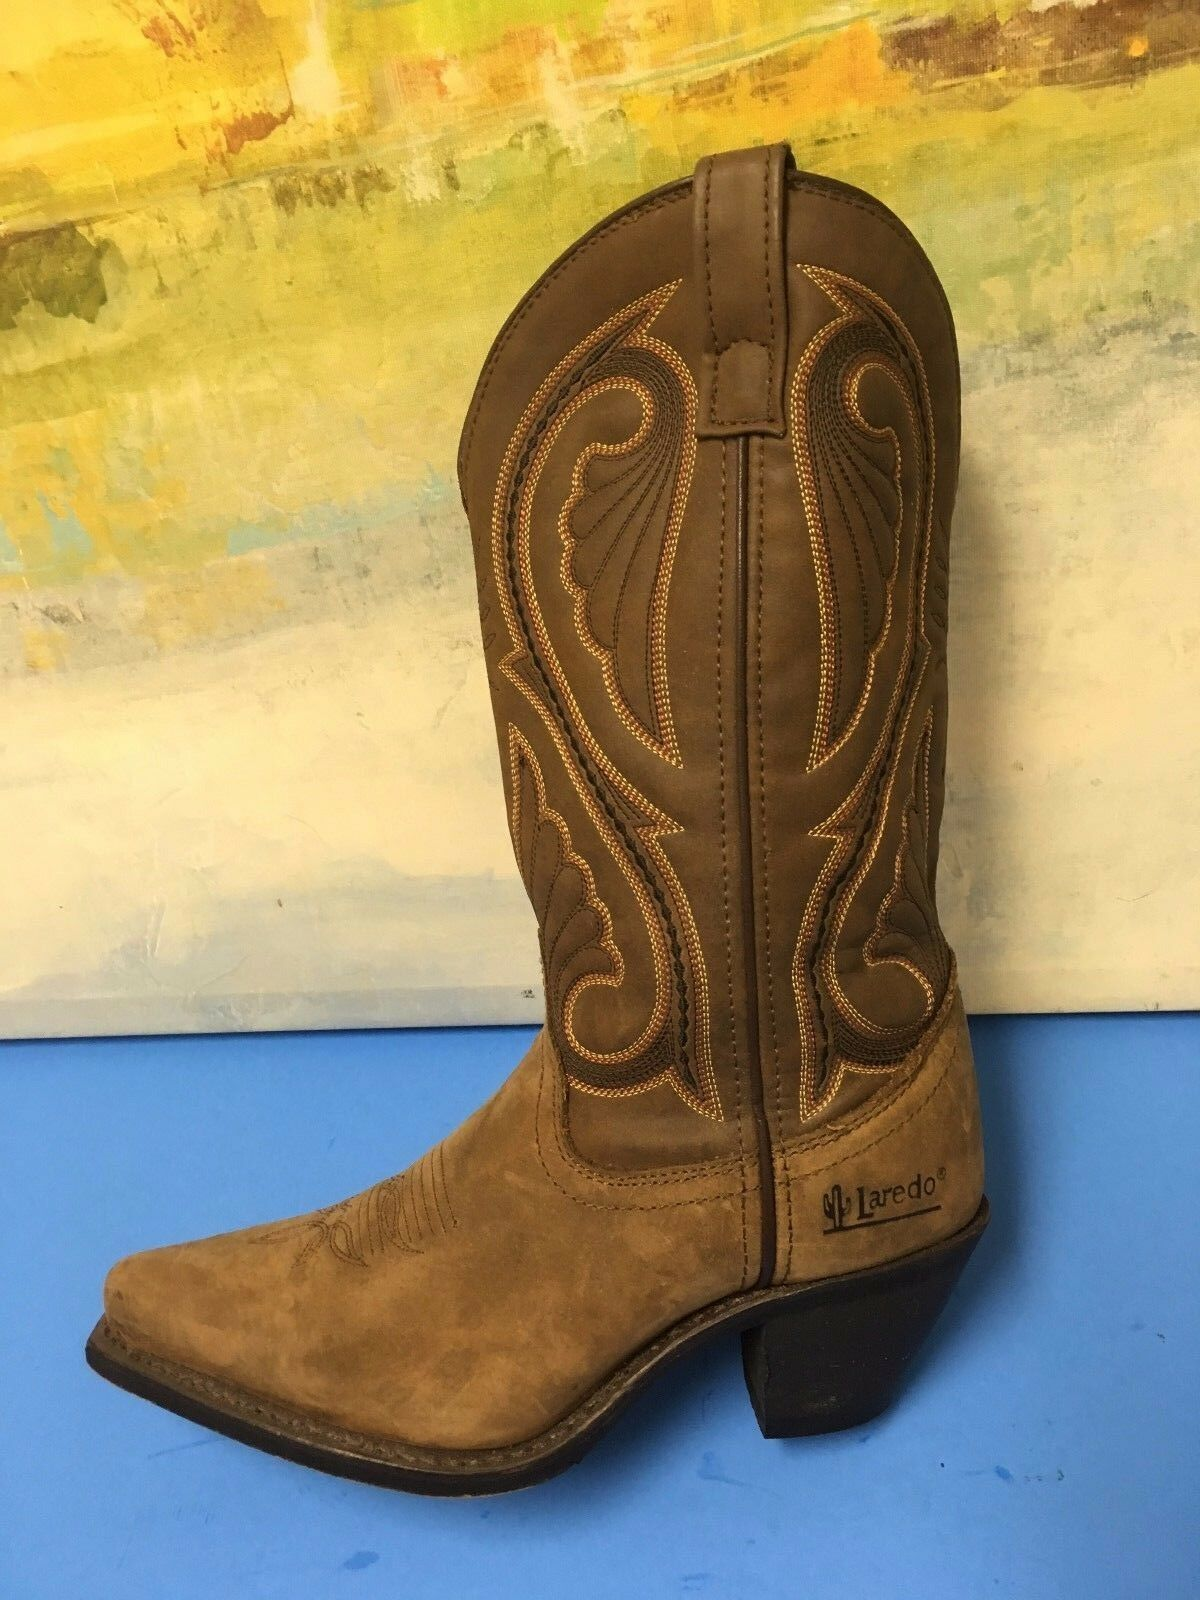 Laredo Ladies Brown Embroidered Cowgirl Boots 5732 Womens Size 6.5 M Beige Brown